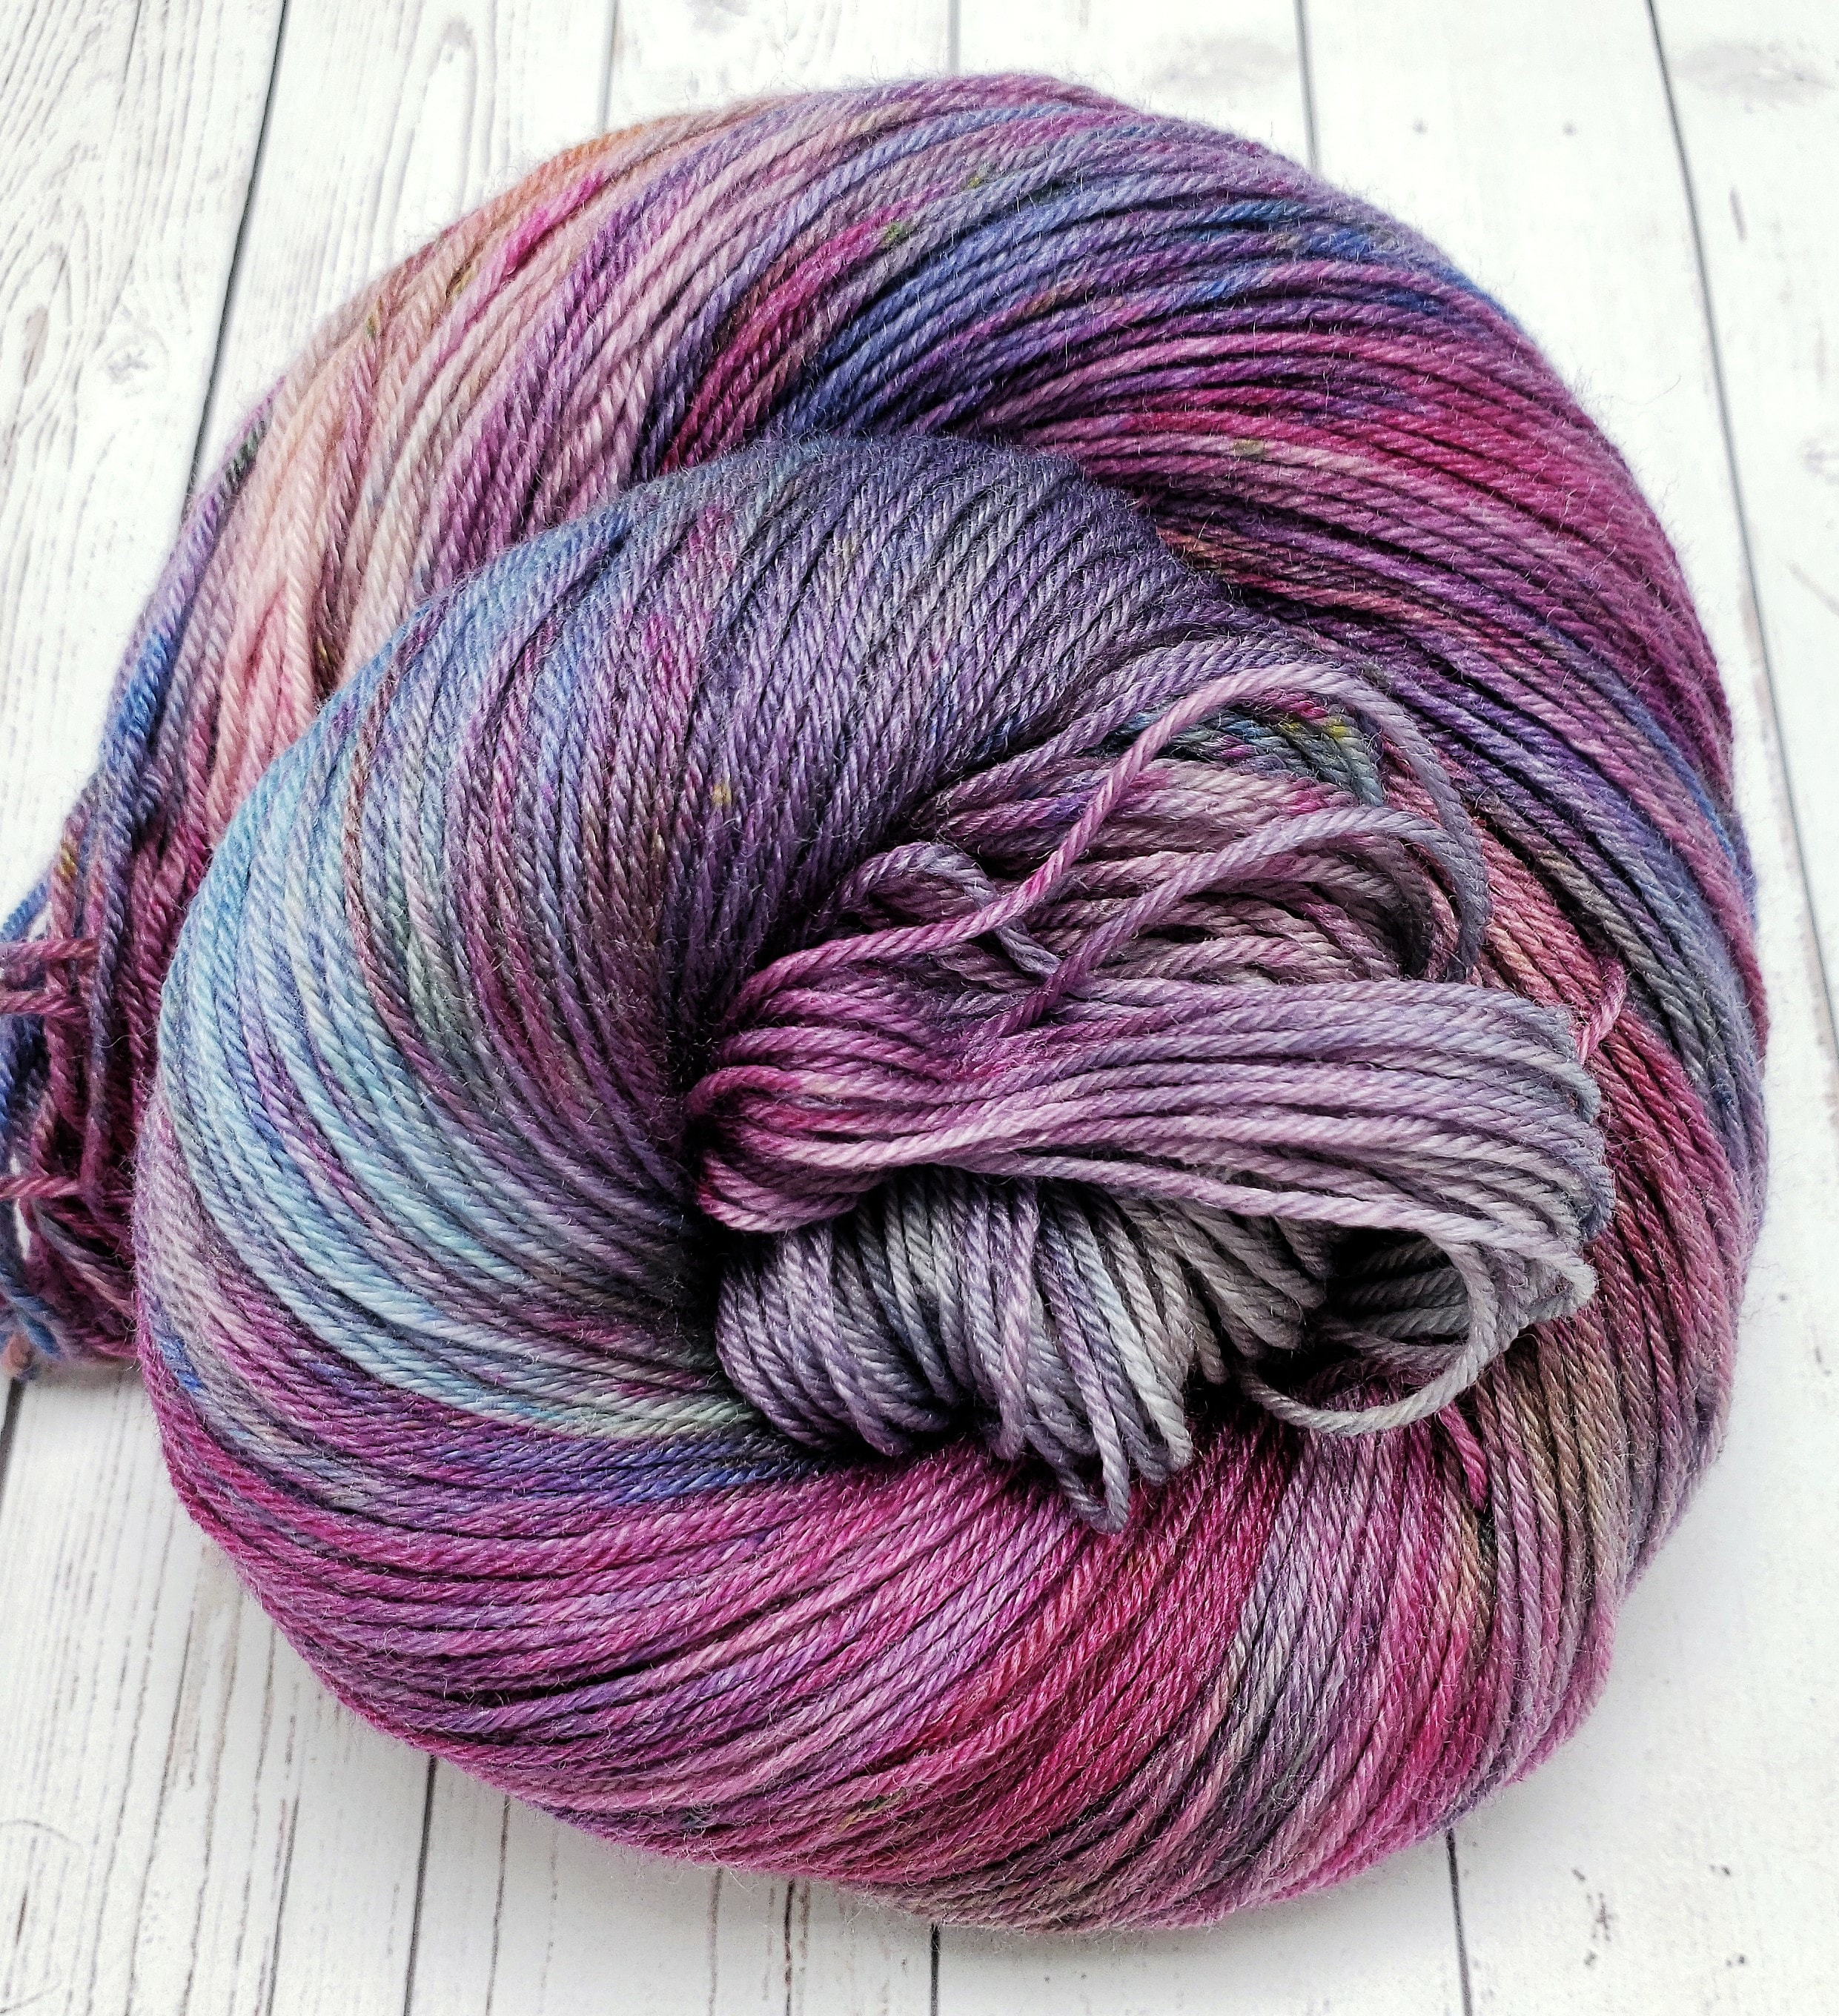 Variegated Yarn Patterns Knitting Touch Of Pink Bamboo Merino Yarn For Knitting Crochet Weaving